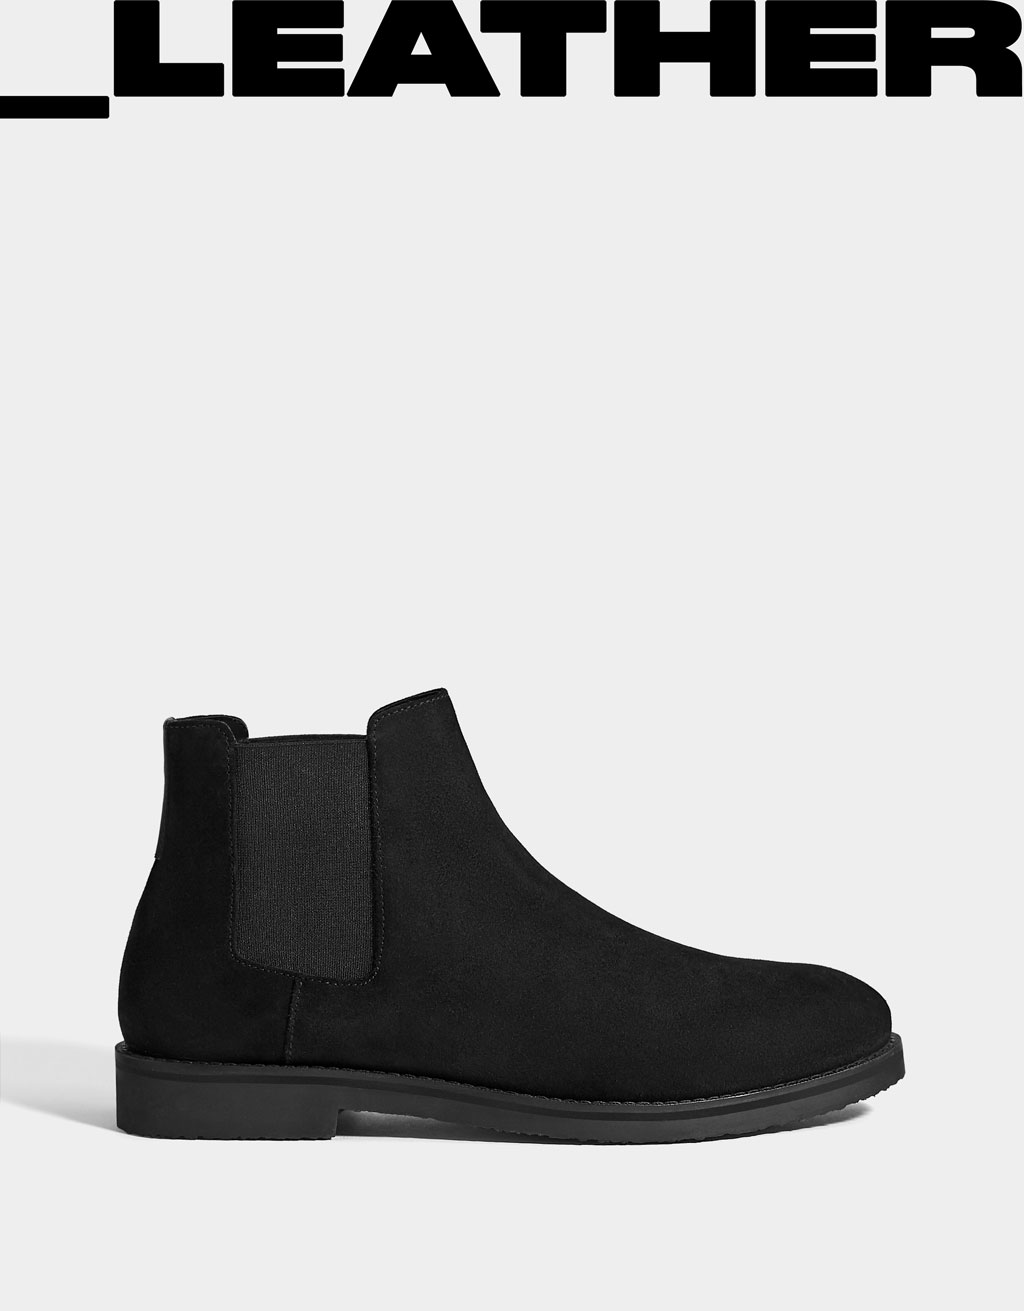 Men's LEATHER stretch ankle boots